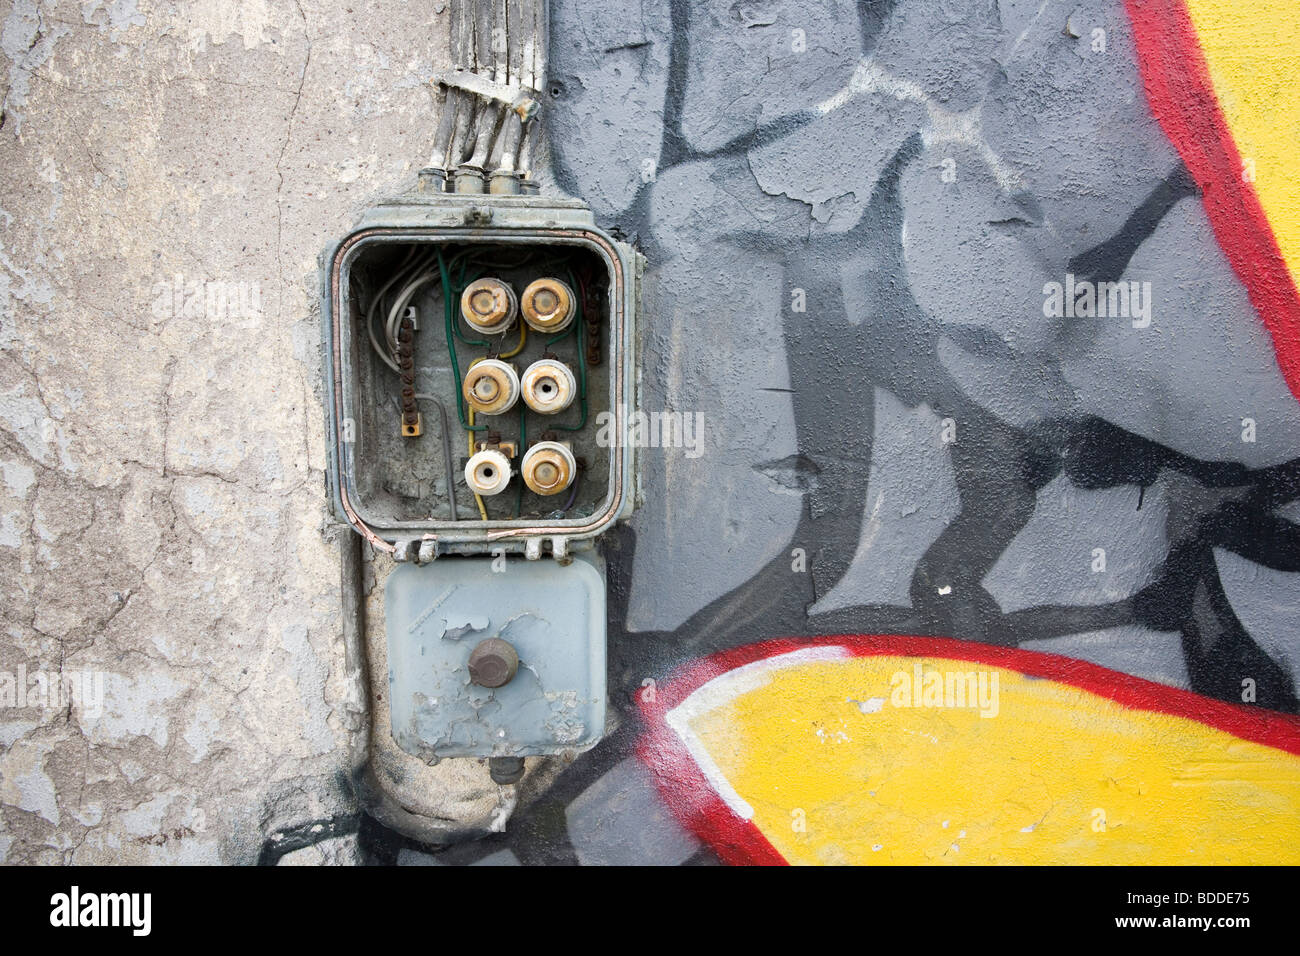 Old Electrical Fuse Box Stock Photos Safe On Abandoned Warehouse Wall Image